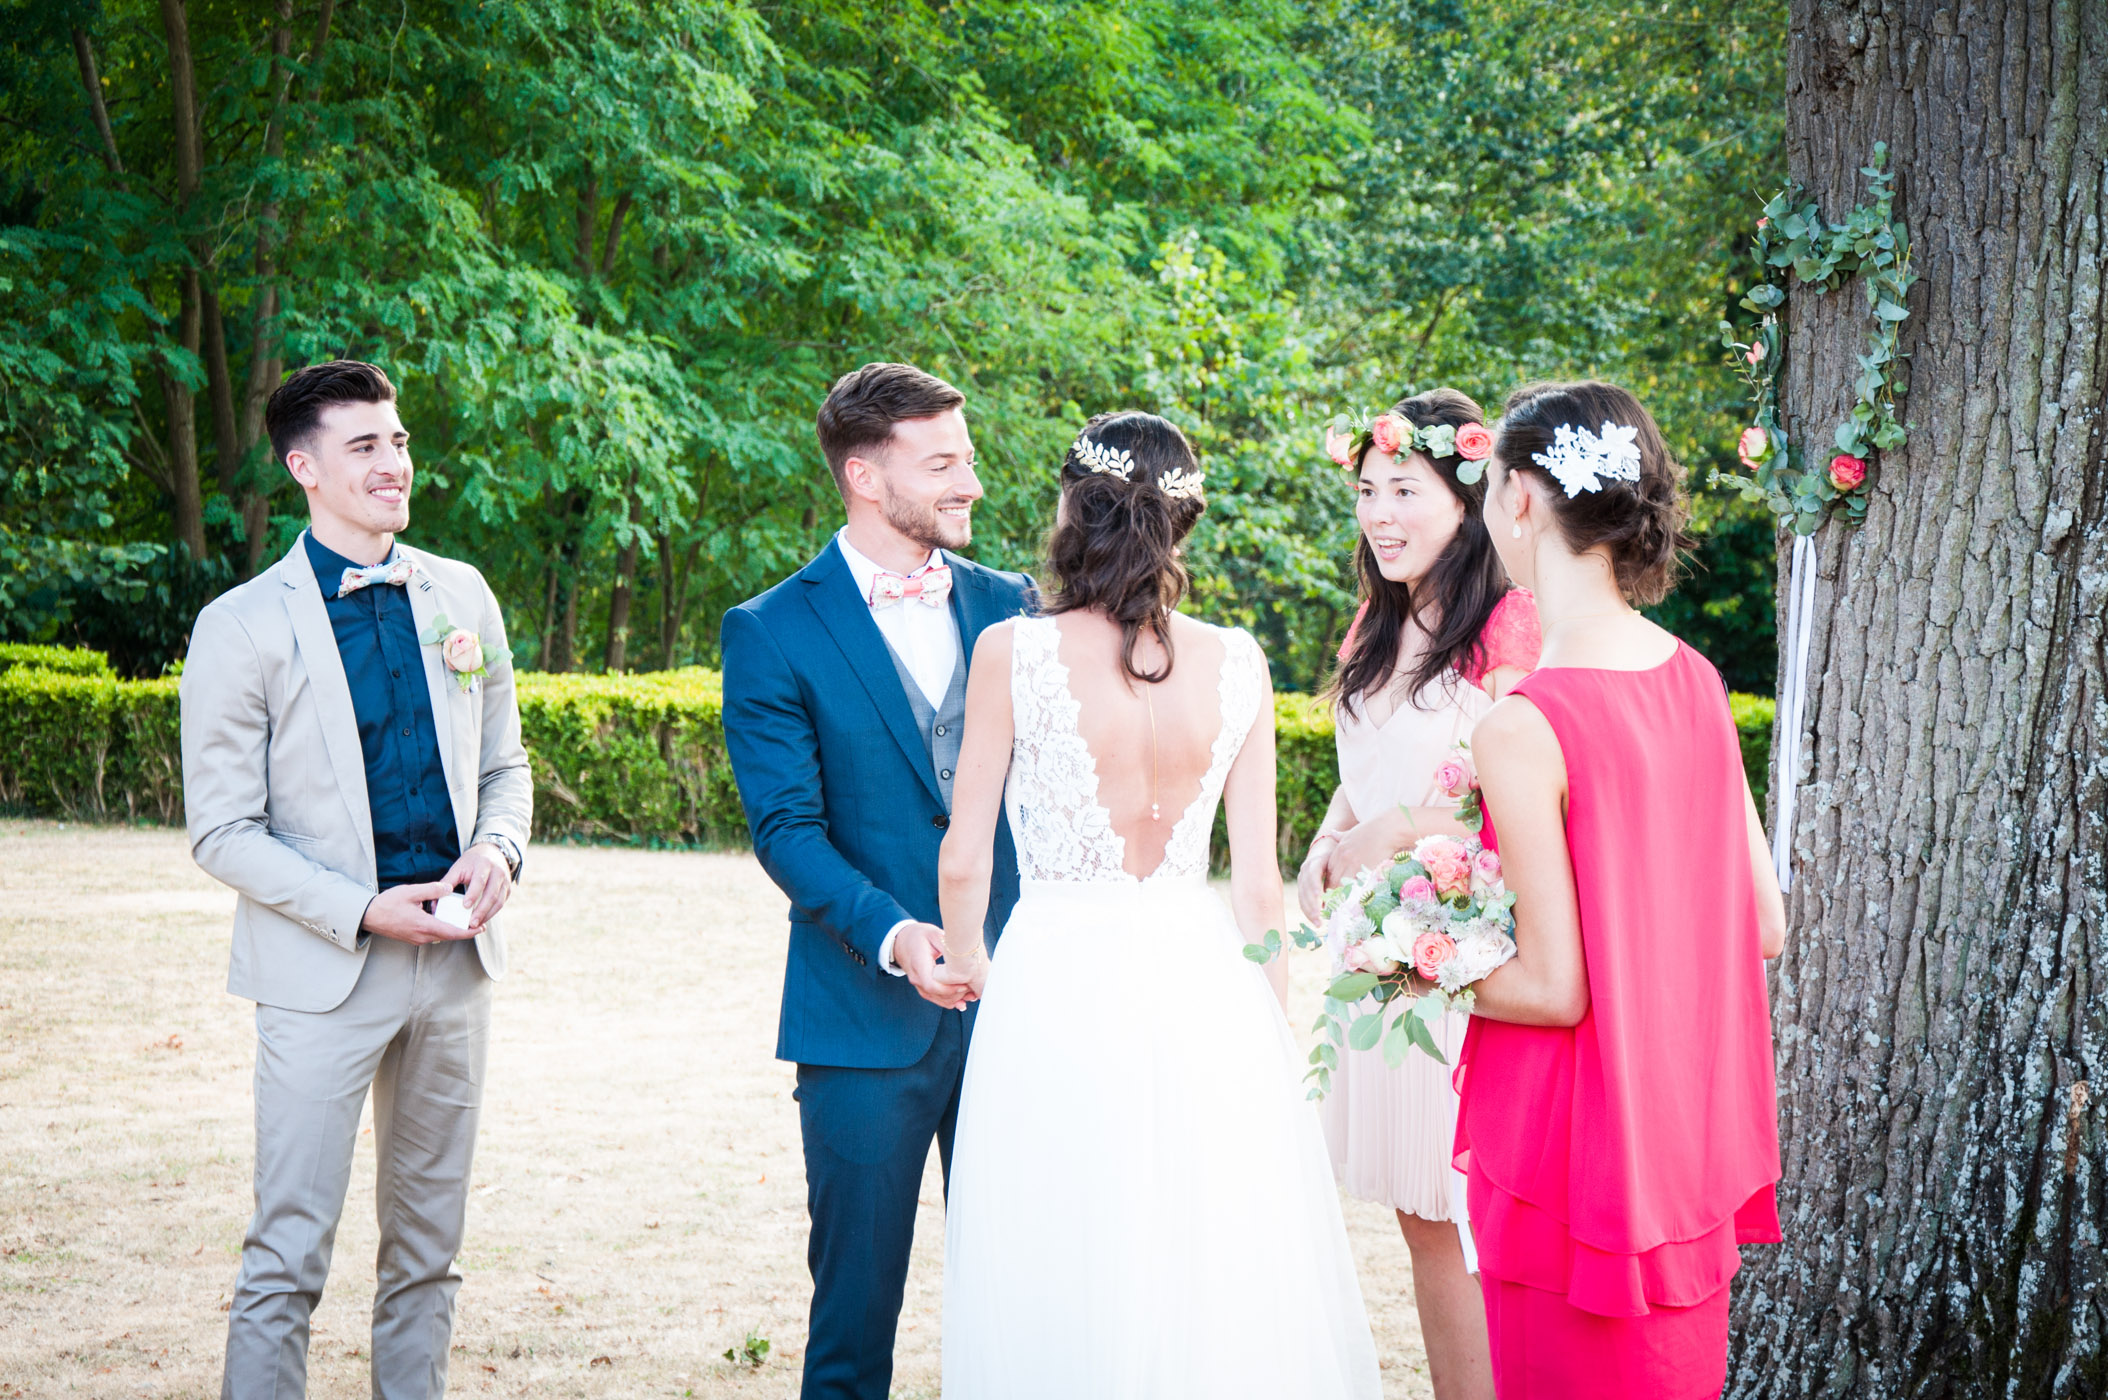 shooting-dinspiration-en-mode-garden-party-chic-blog-la-mariee-sous-les-etoiles-credit-romain-le-blond-61